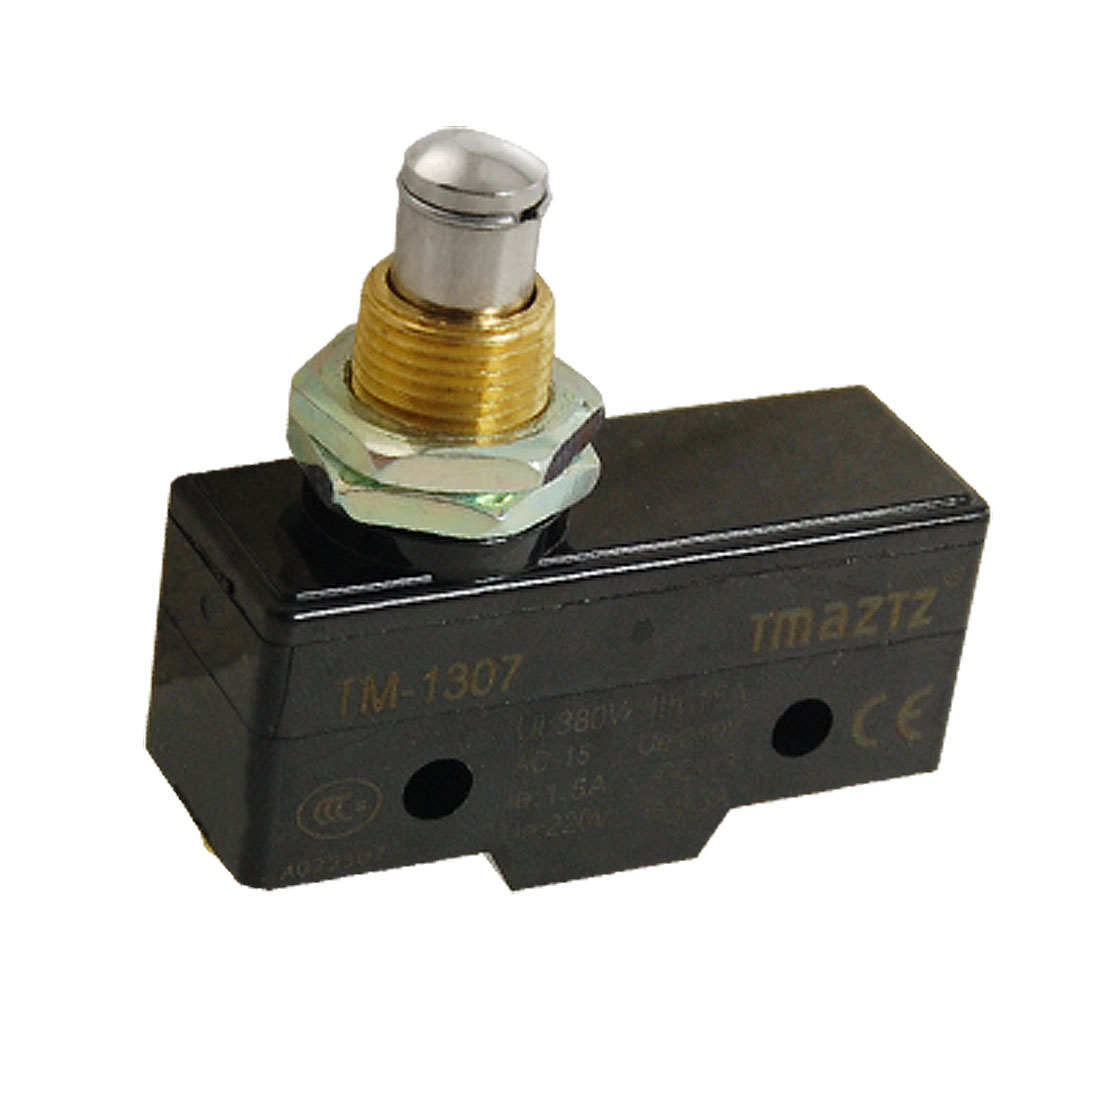 Plunger Actuator Panel Mount Momentary Micro Switch TM1307